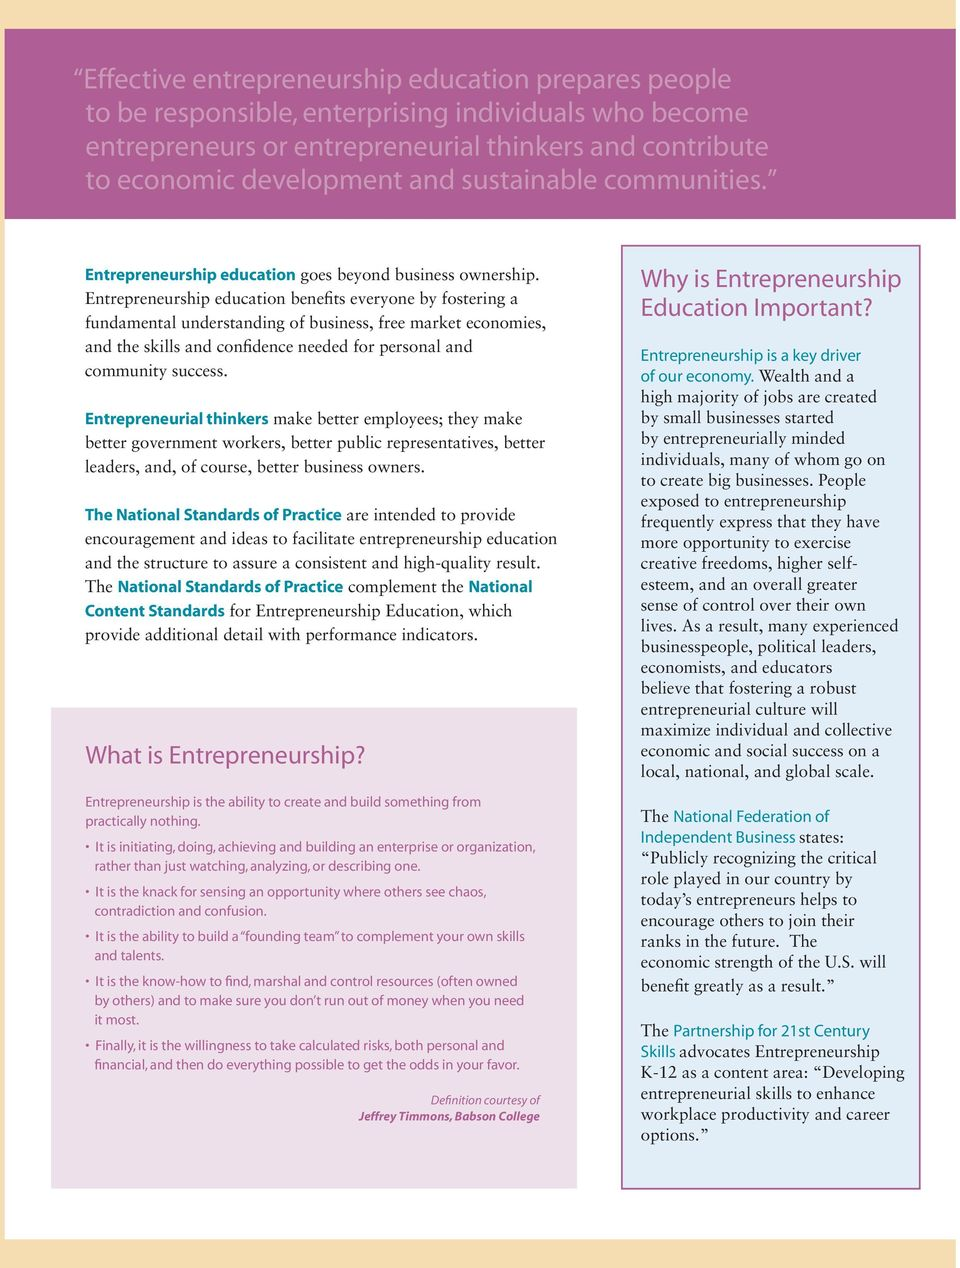 Entrepreneurship education benefits everyone by fostering a fundamental understanding of business, free market economies, and the skills and confidence needed for personal and community success.